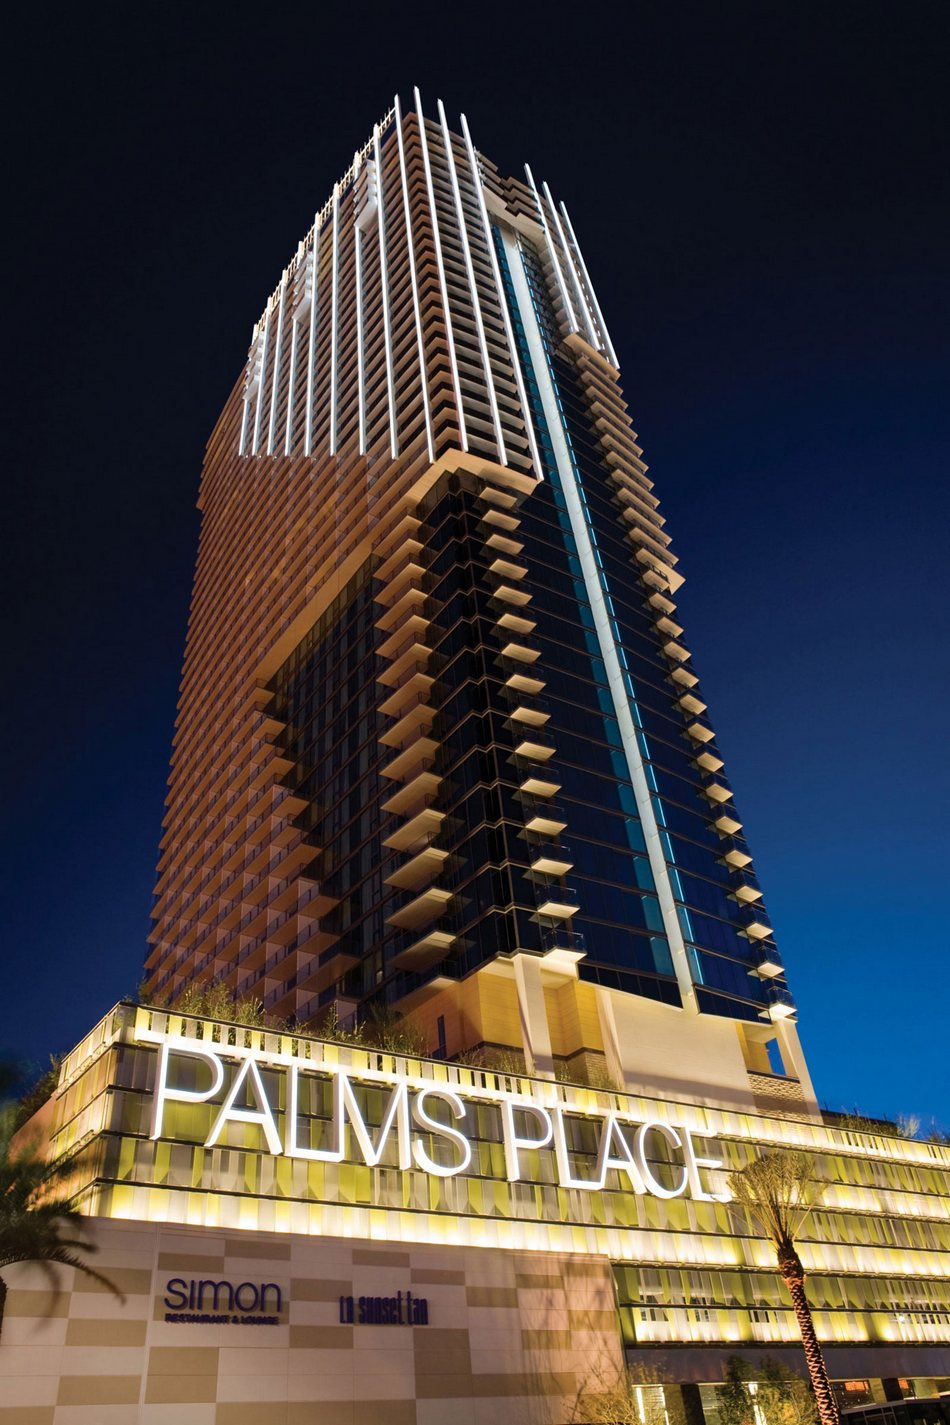 Отель Palms Place Hotel & Spa в Лас-Вегасе